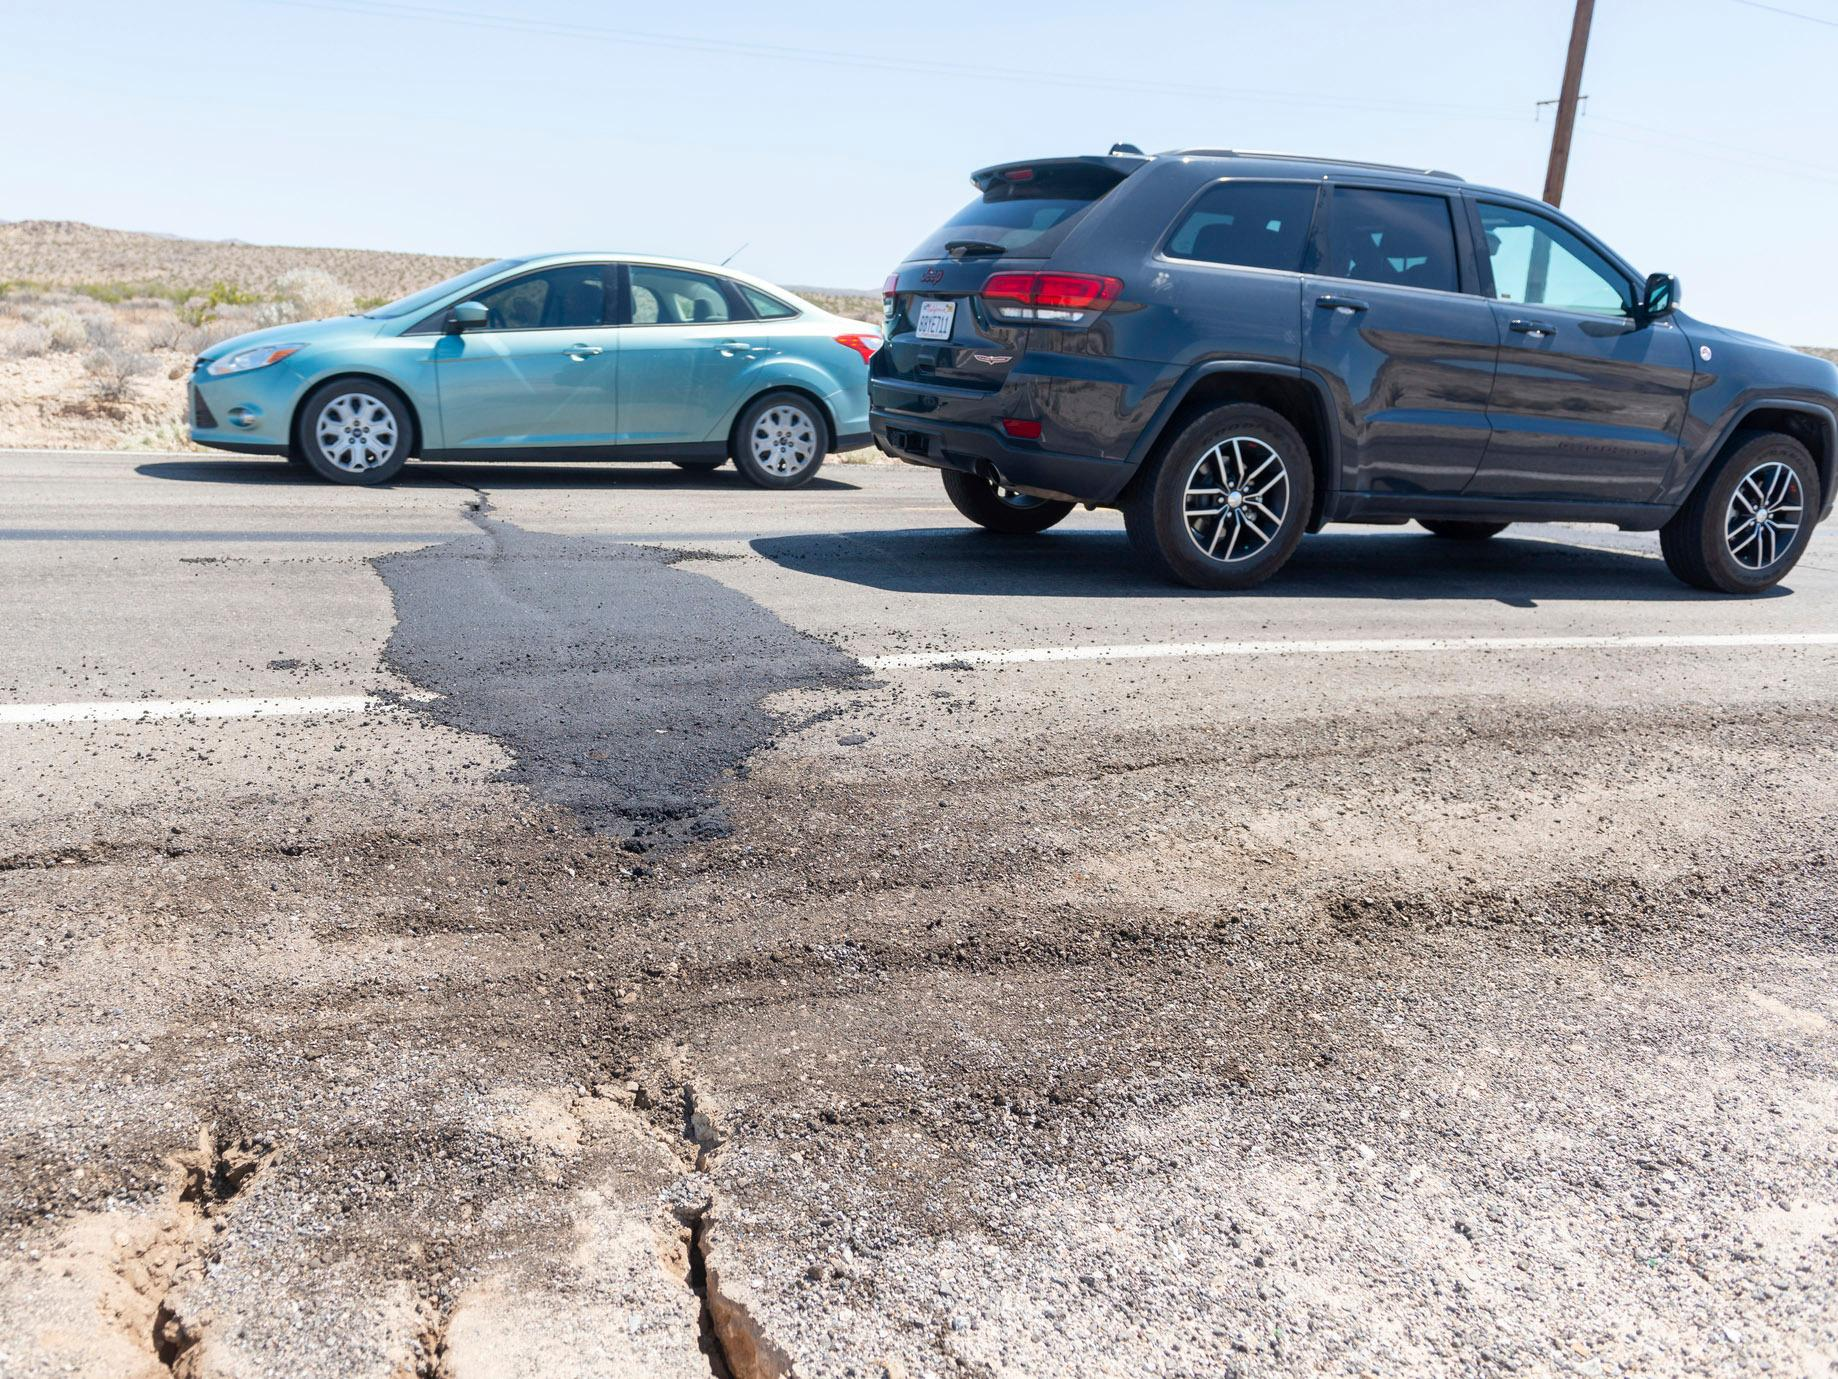 Traffic drives over a patched section of Highway 178 between Ridgecrest and Trona, Calif., on Friday, July 5, 2019. The strongest earthquake in 20 years shook a large swath of Southern California and parts of Nevada on the July 4th holiday, rattling nerves and causing injuries and damage in a town near the epicenter, followed by a swarm of ongoing aftershocks. The 6.4 magnitude quake struck Thursday in the Mojave Desert, about 150 miles northeast of Los Angeles, near the town of Ridgecrest. (James Quigg/The Daily Press via AP)